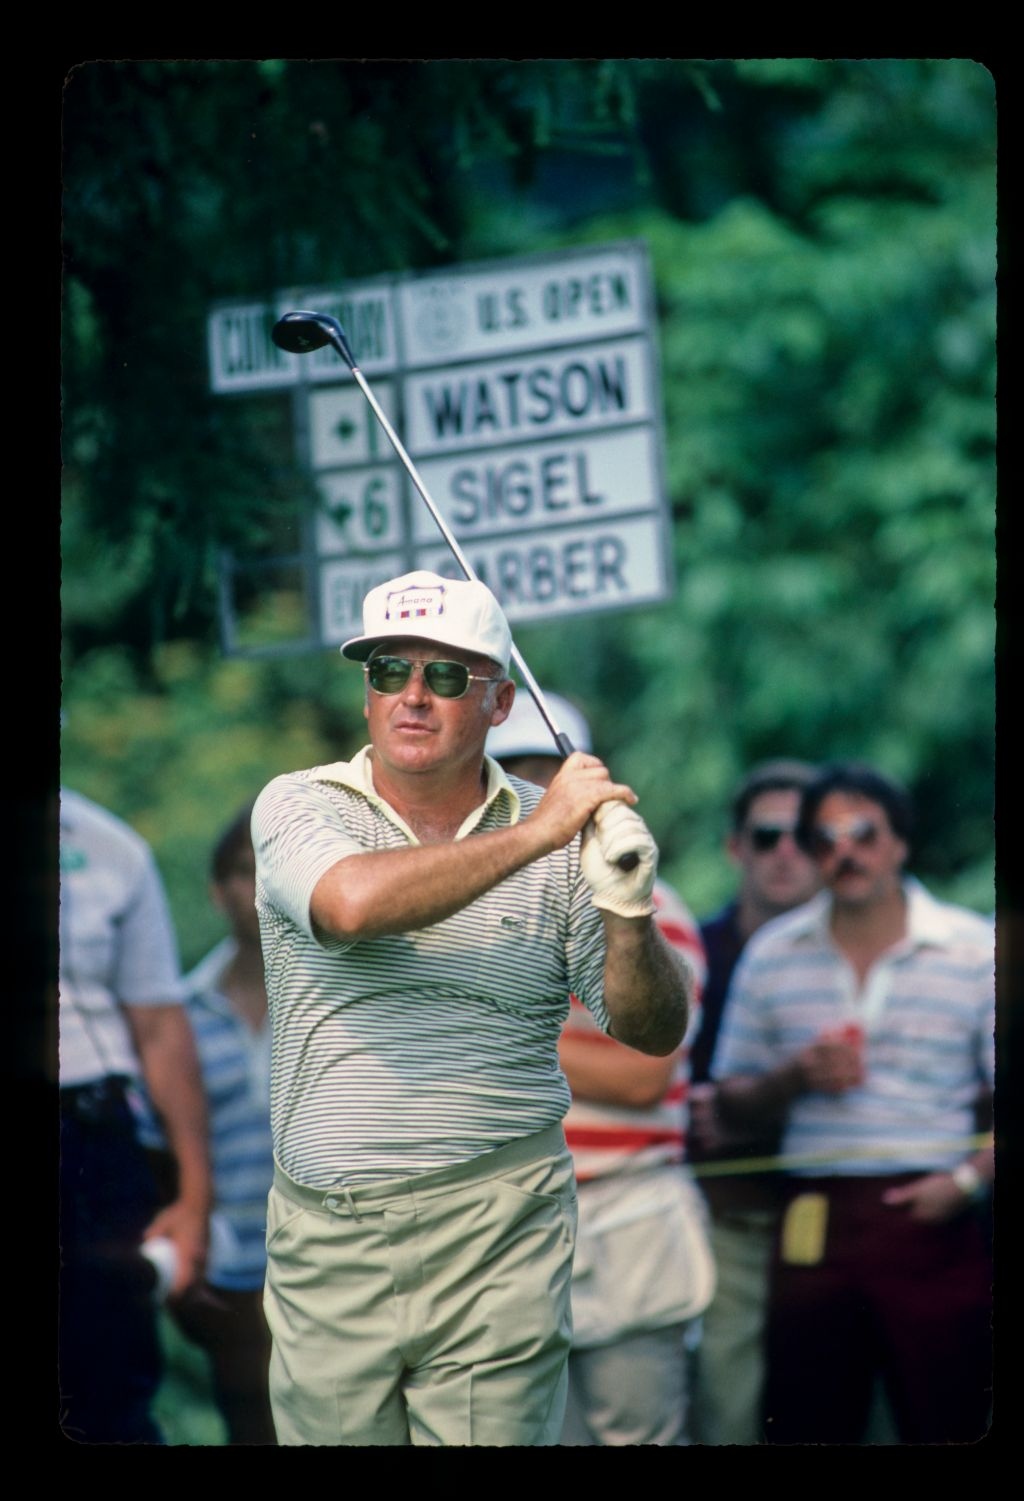 A 52 year old Miller Barber making a strong challenge at the 1983 US Open at Oakmont Country Club